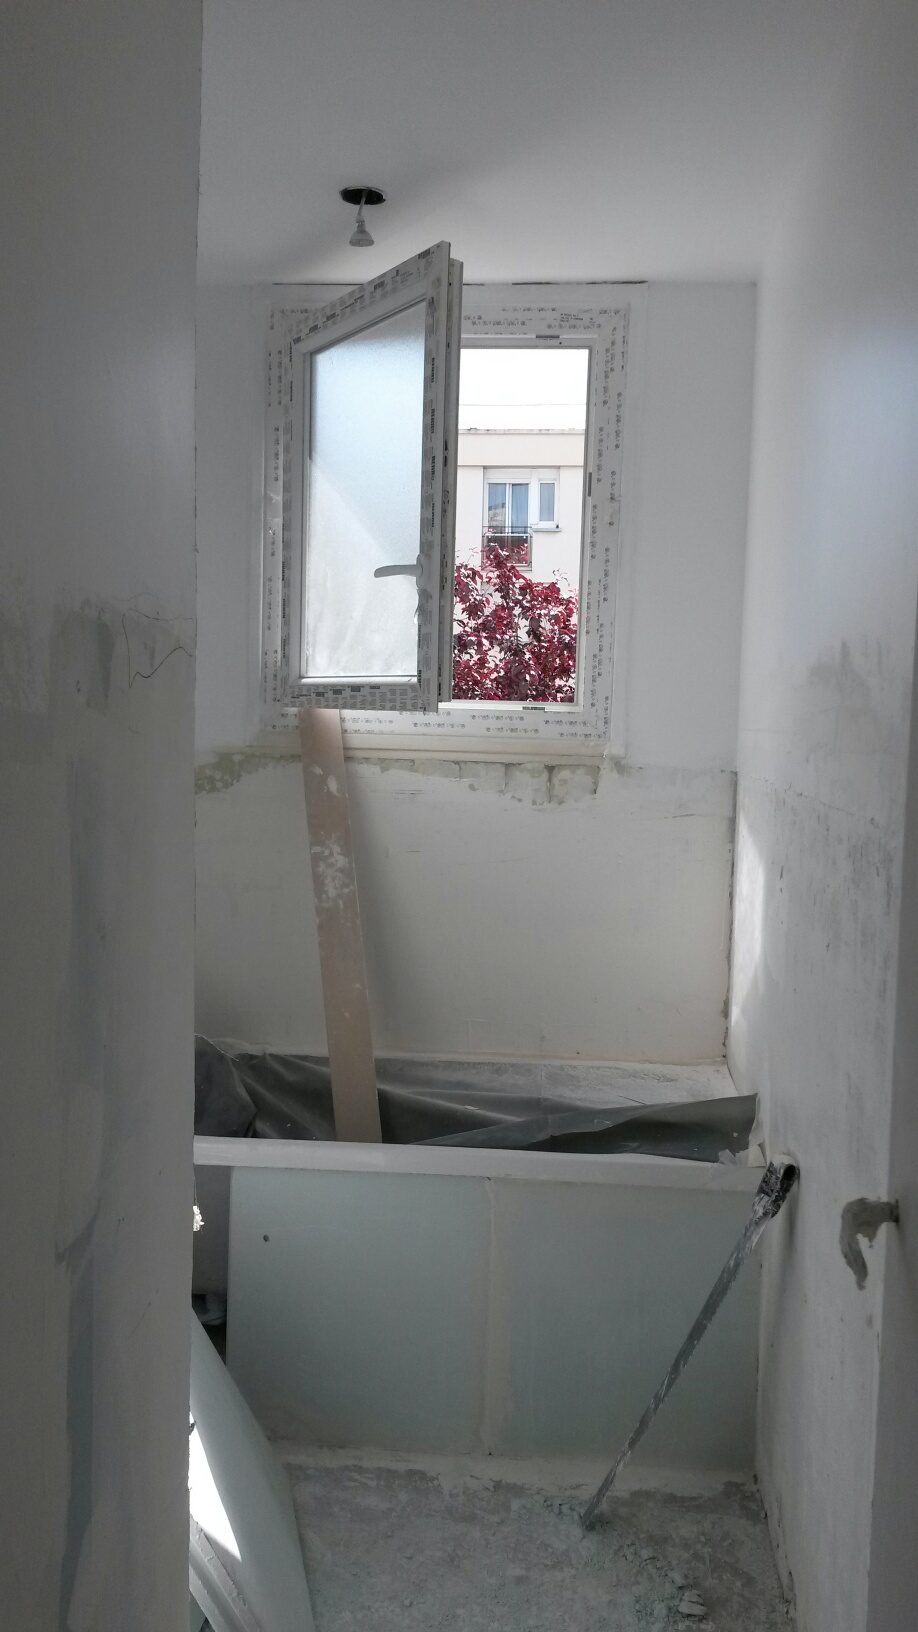 Renovation appartement cachan 94230 de 59 m2 for Cout travaux salle de bain